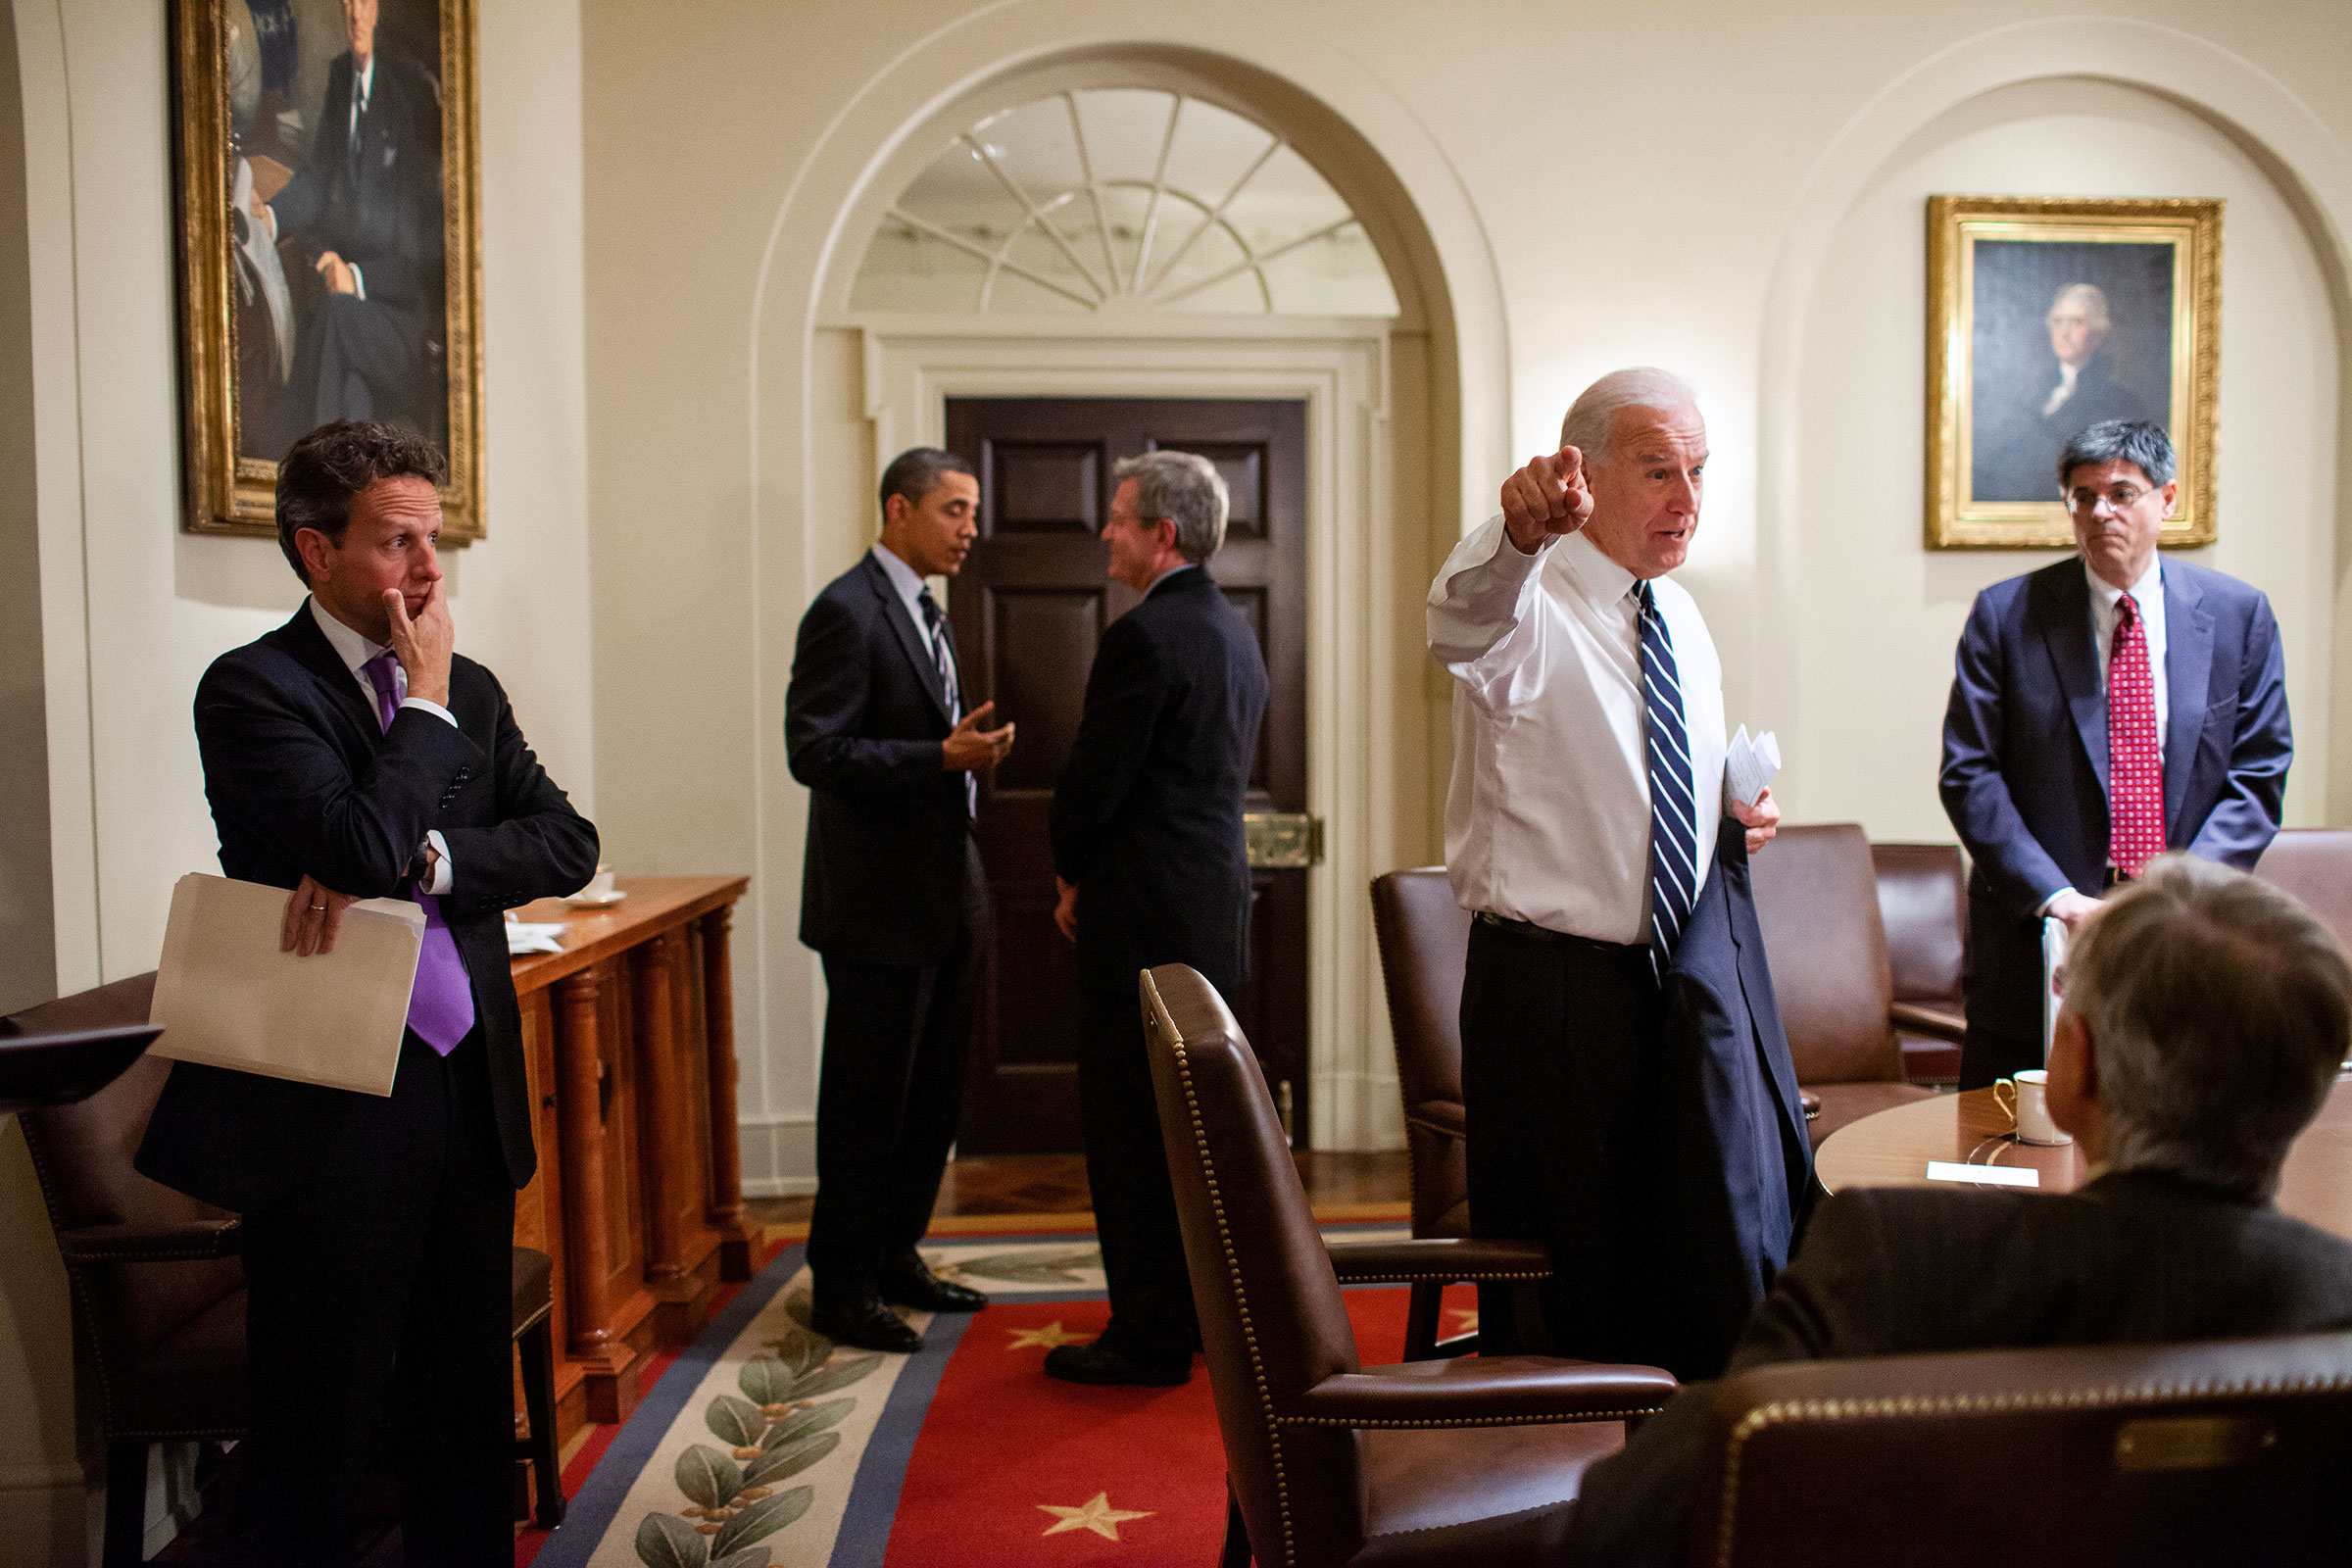 President Barack Obama, Vice President Joe Biden, and Treasury Secretary Timothy F. Geithner meet with Senate Democratic leaders in the Cabinet Room of the White House, on Dec. 6, 2010.